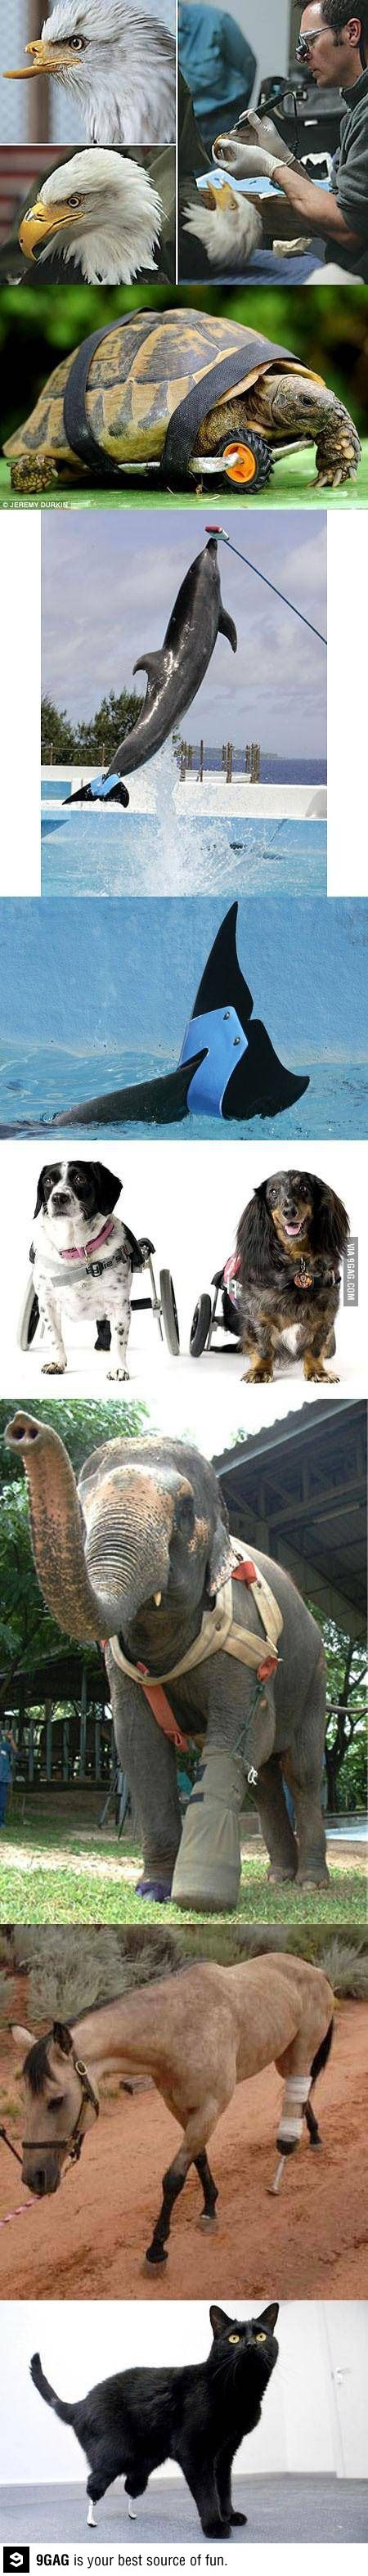 Animal prosthesis. It makes me sad and happy. However that works.